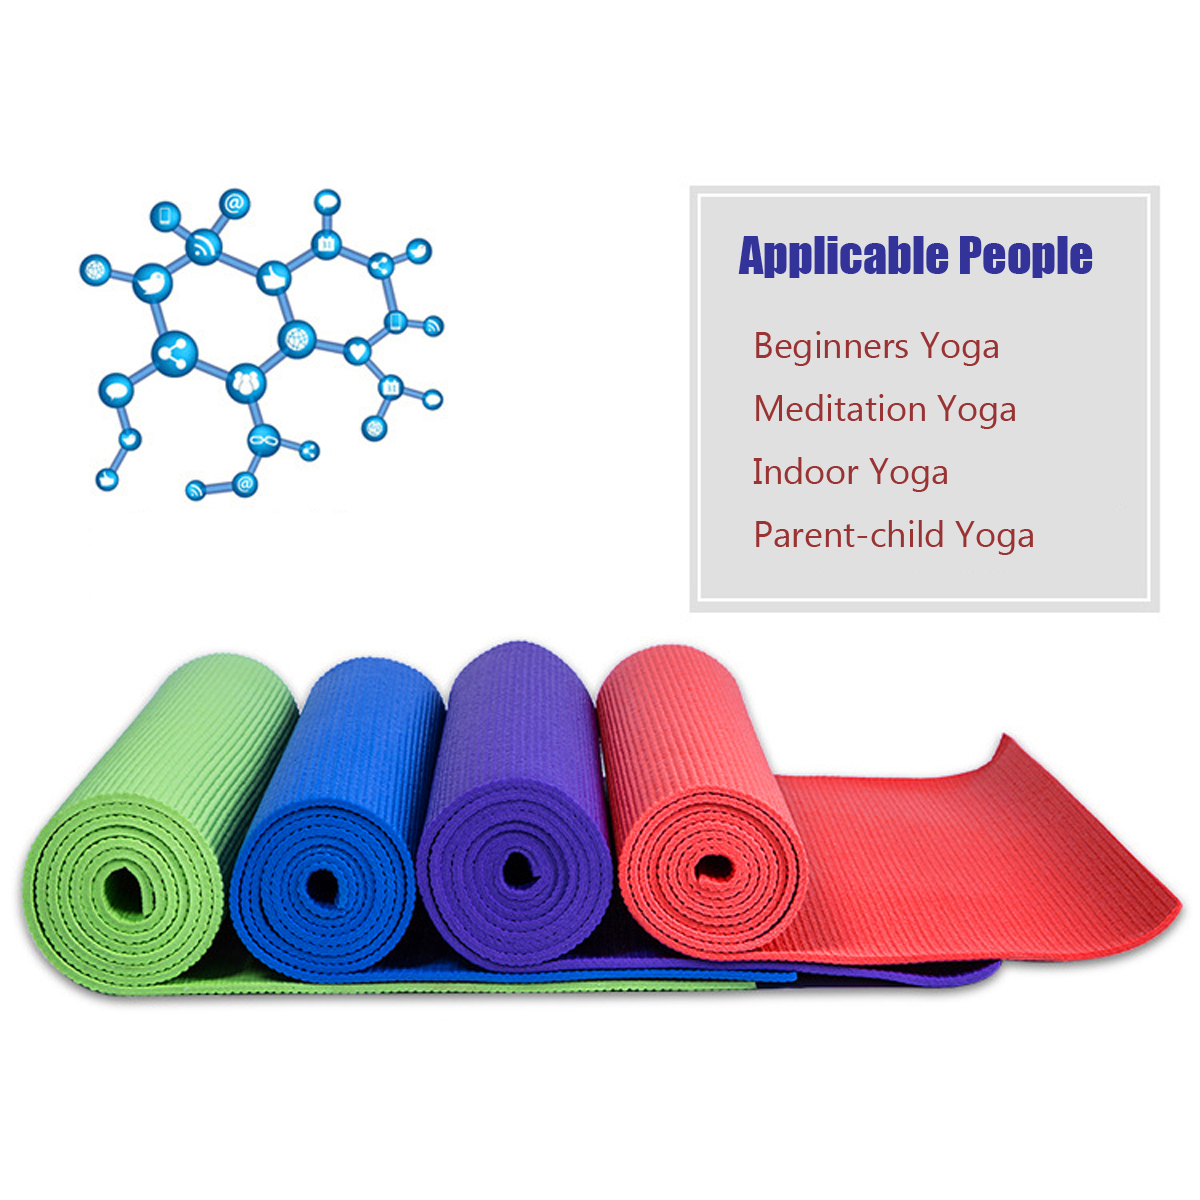 5mm Thickness PVC Yoga Pilate Non Slip Mat Fitness Exercise Weight Loss Pad